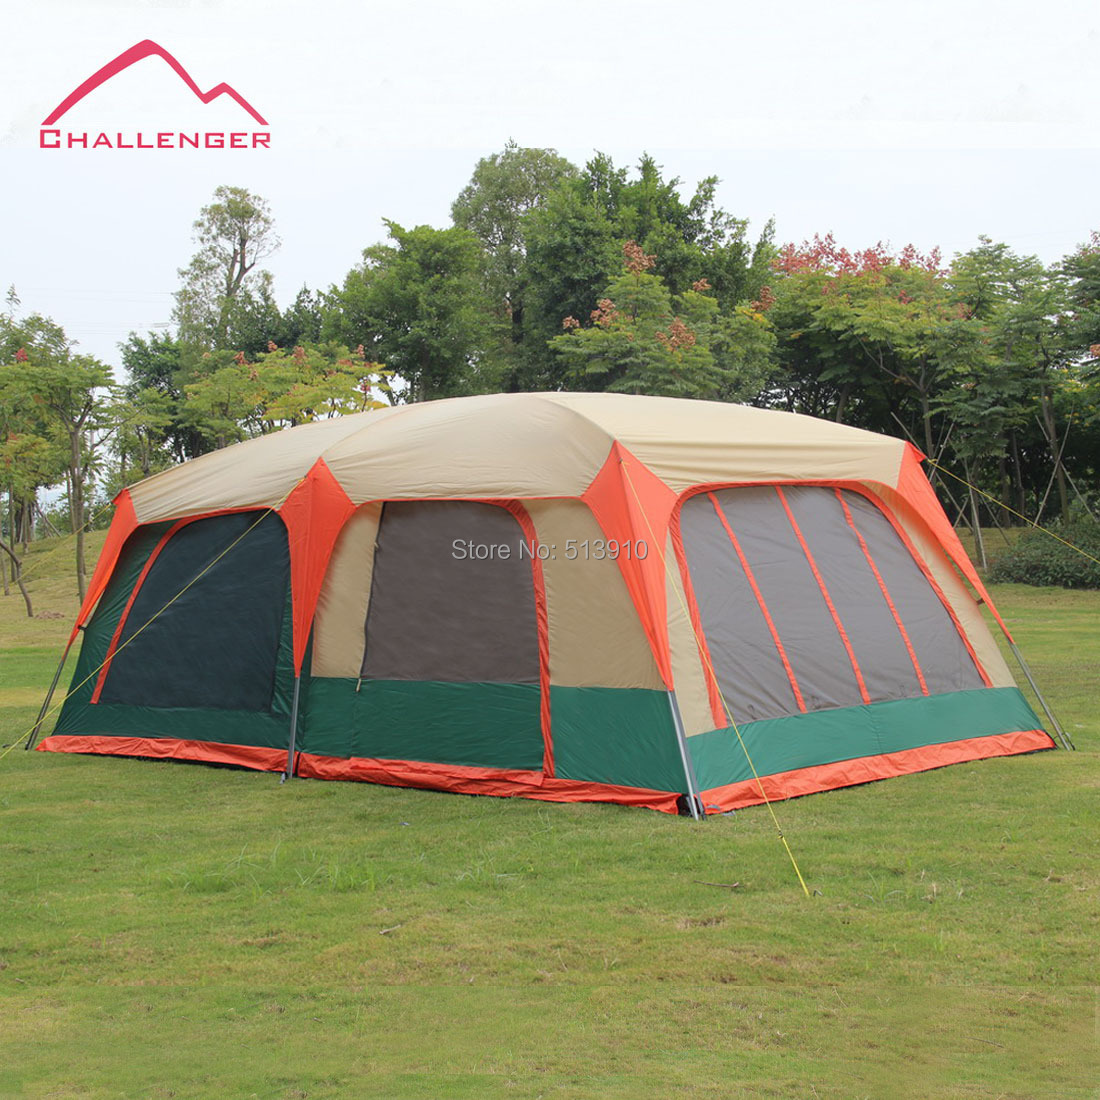 Super large family tent 8 12 person double layer UV50+ c&ing tent 2rooms 1 hall can be ide into 4rooms-in Tents from Sports u0026 Entertainment on ... & Super large family tent 8 12 person double layer UV50+ camping ...